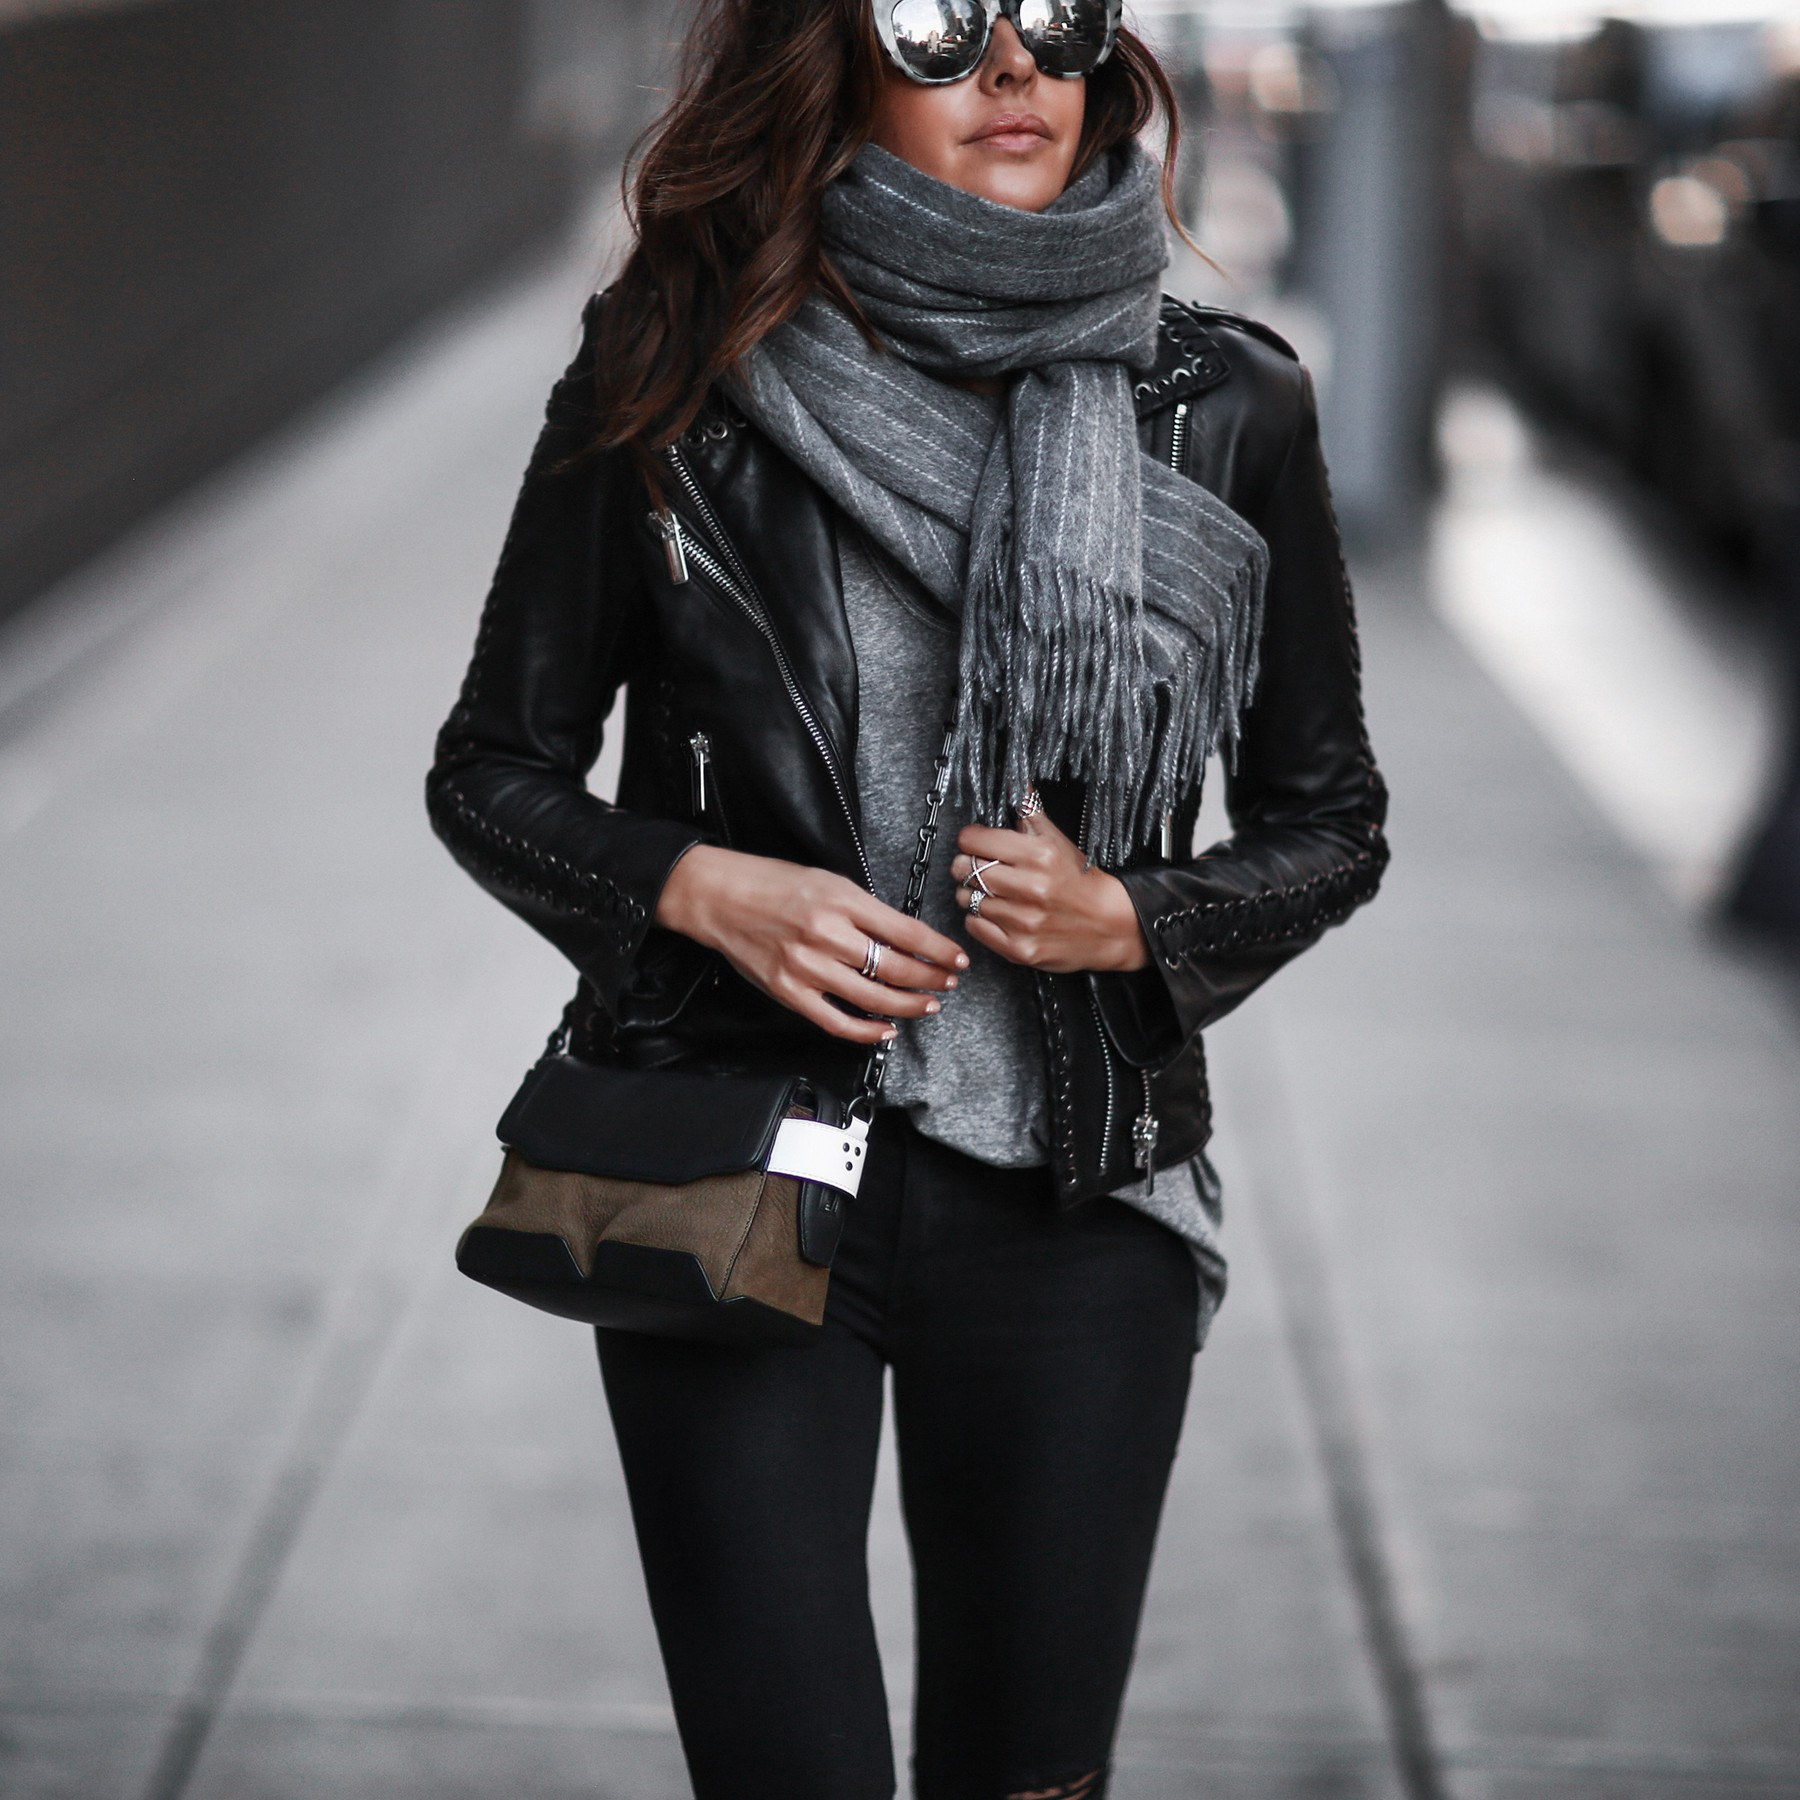 black leather jacket, pinstripe scarf, skinny jeans